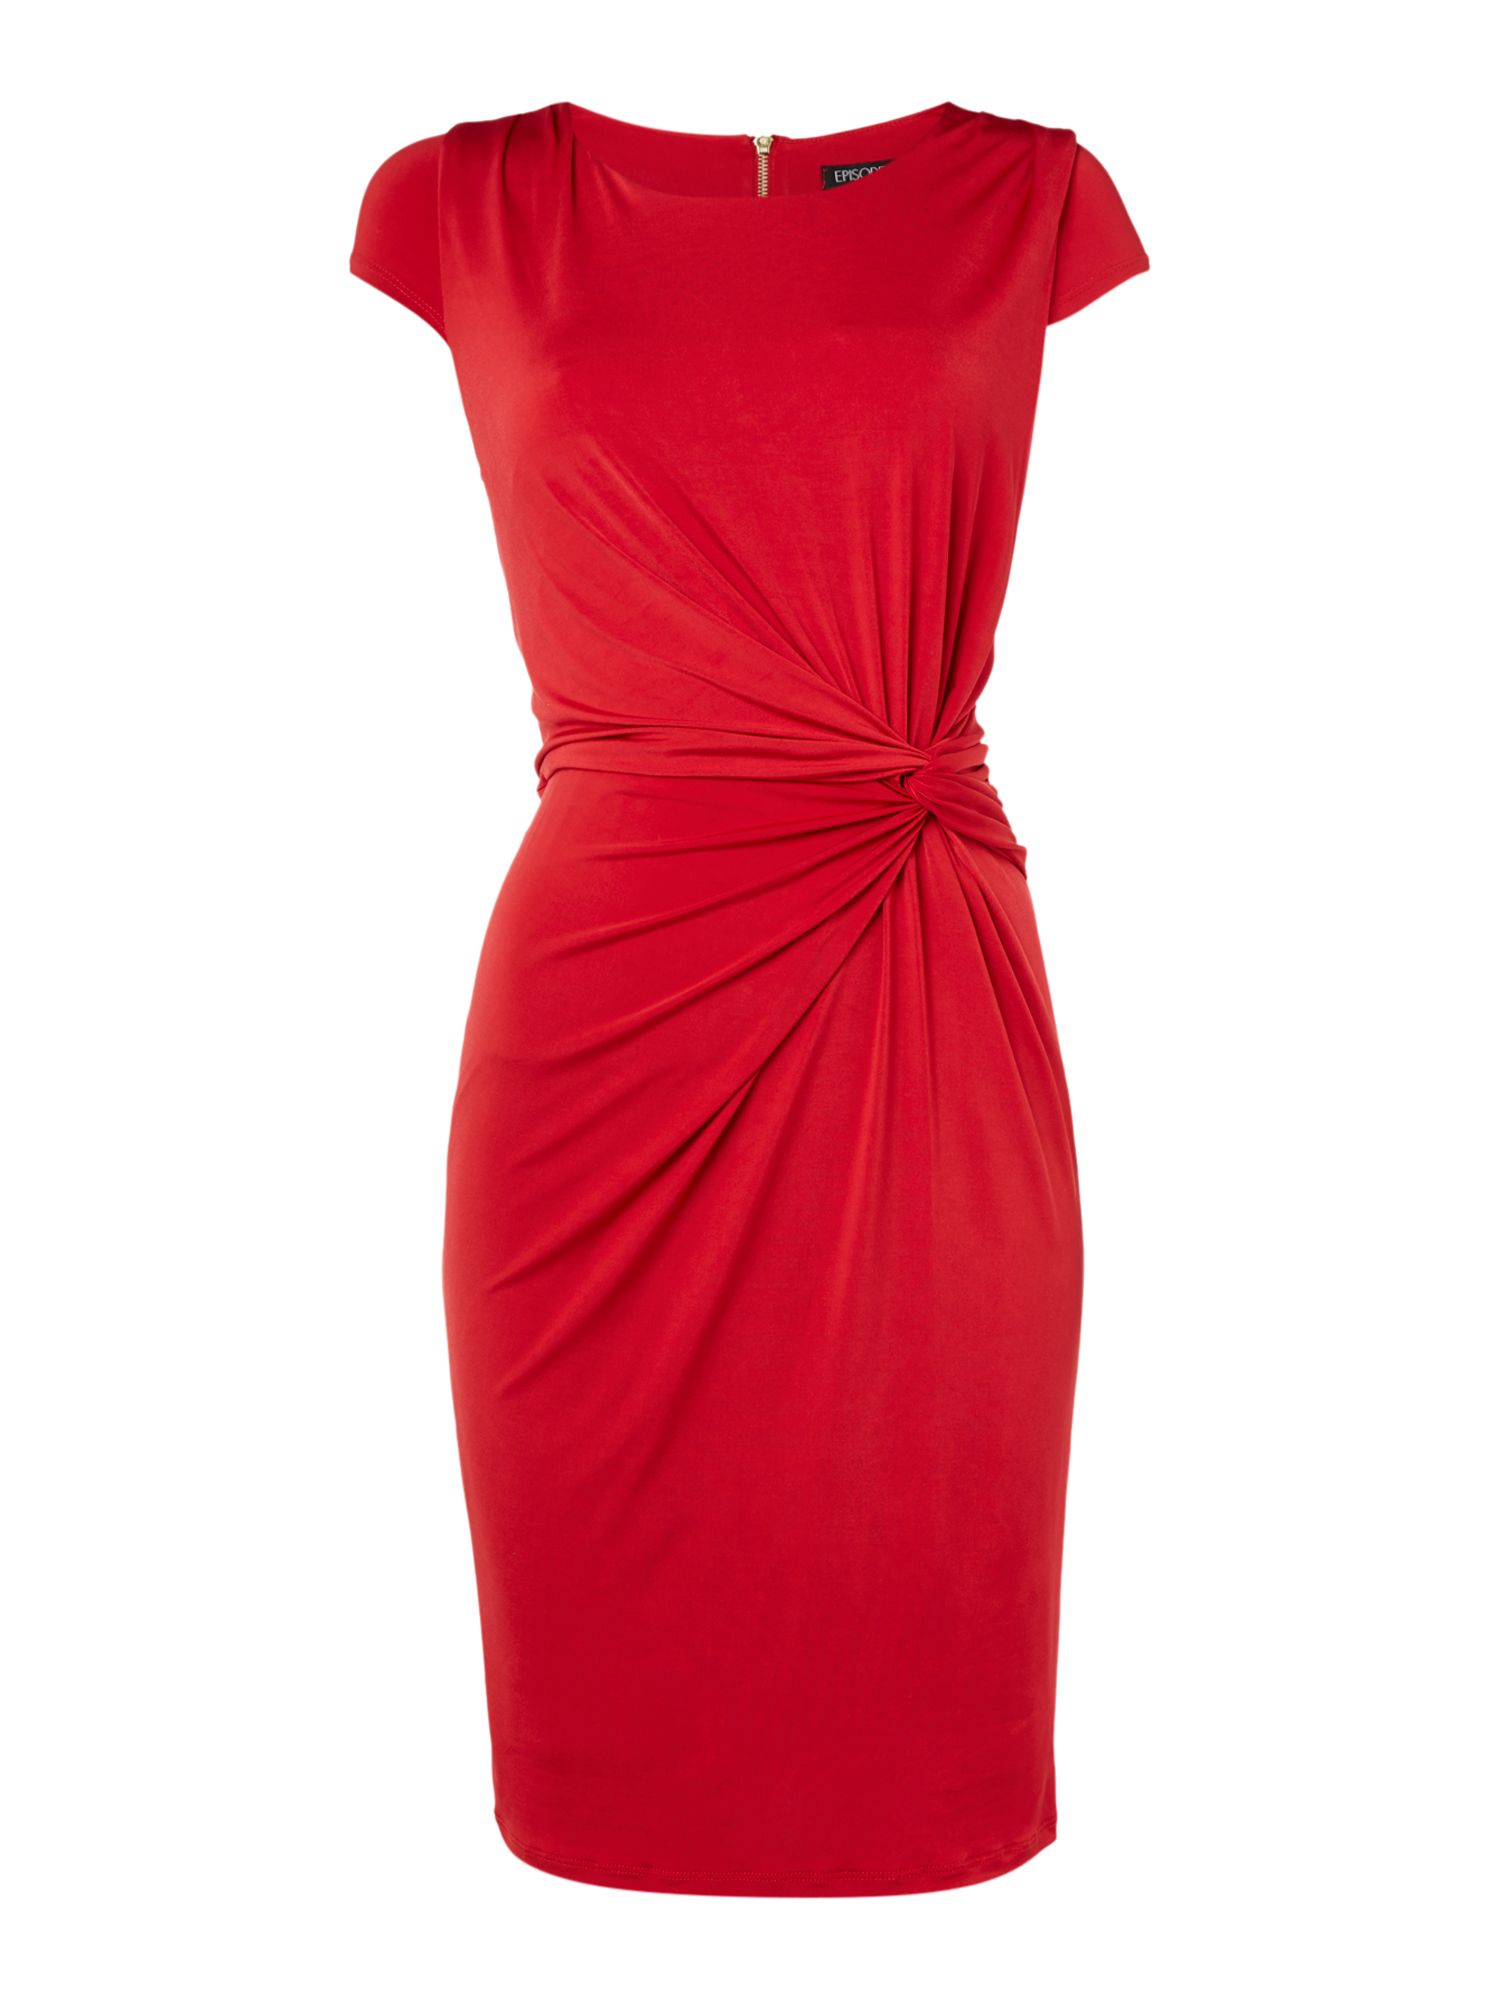 Episode Episode Knot front jersey dress with exposed zip, Red